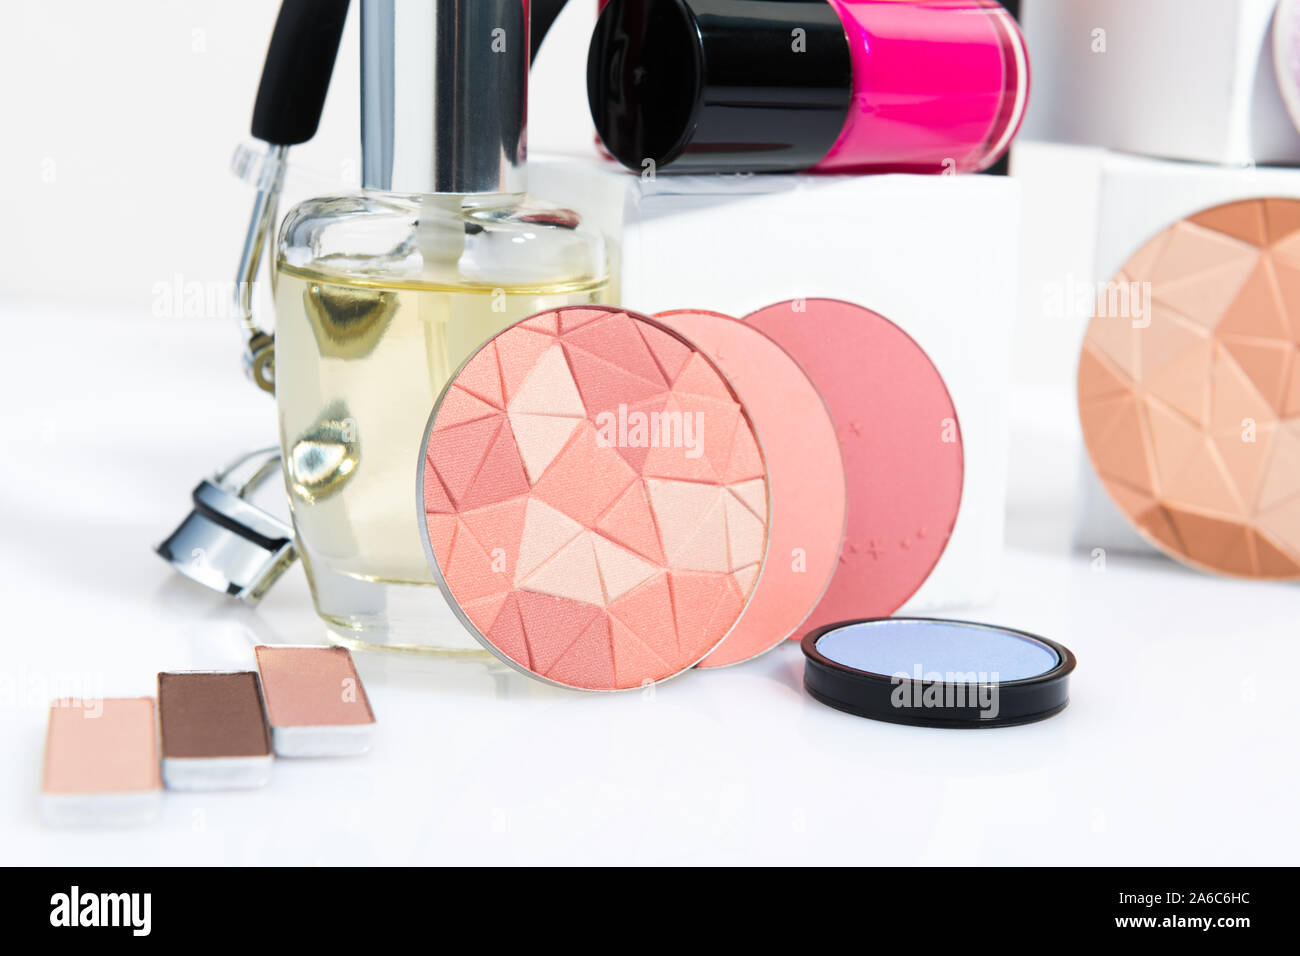 still life with beauty and makeup products Stock Photo